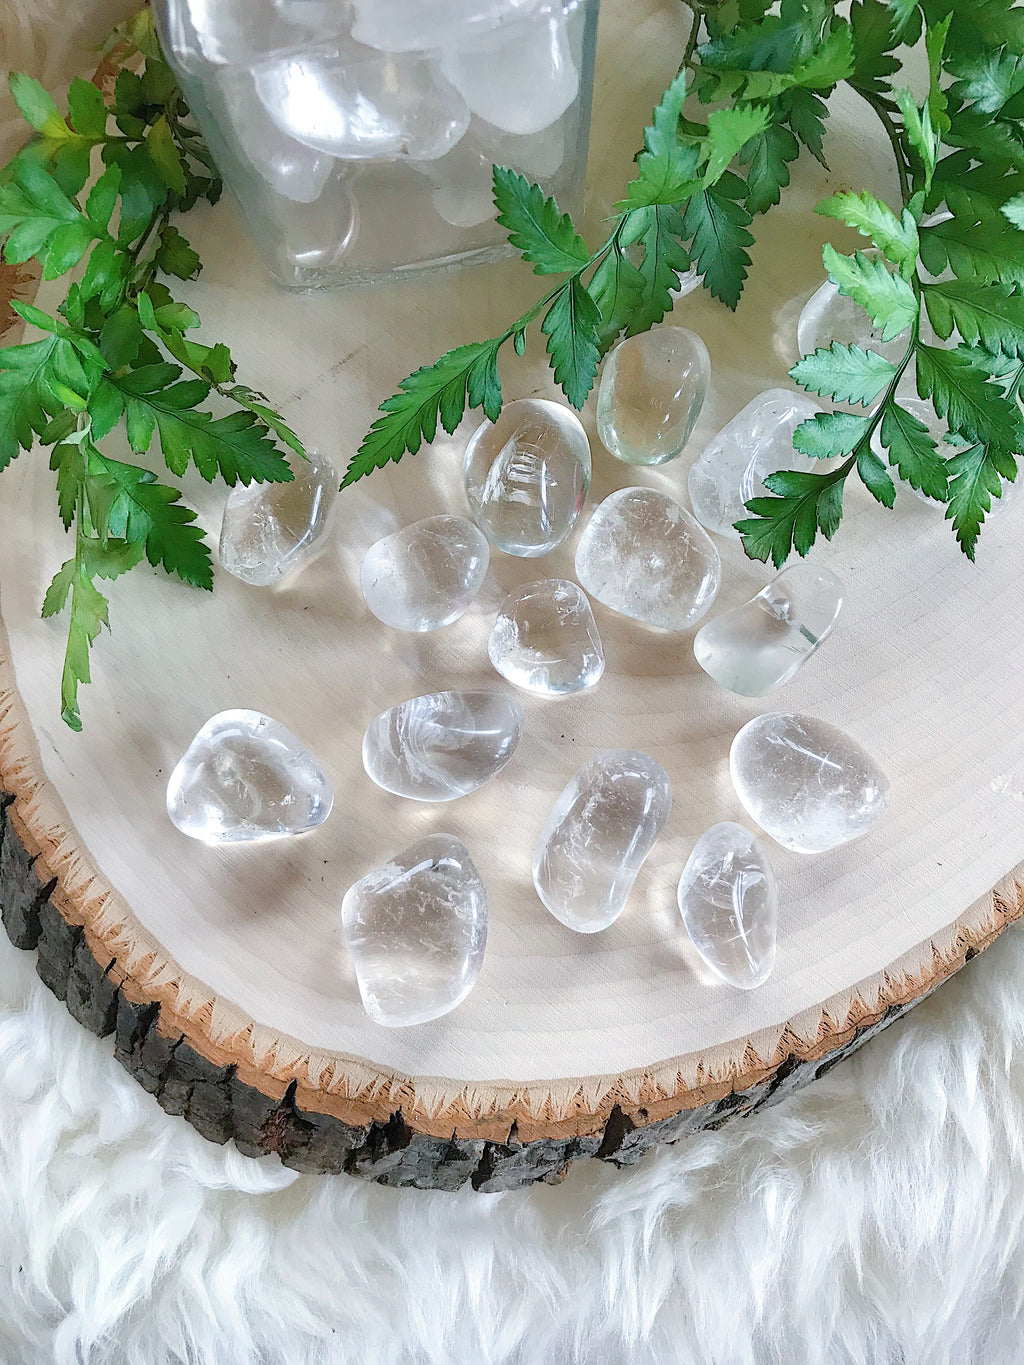 Tumbled Clear Quartz for Amplifying Energy & Intention